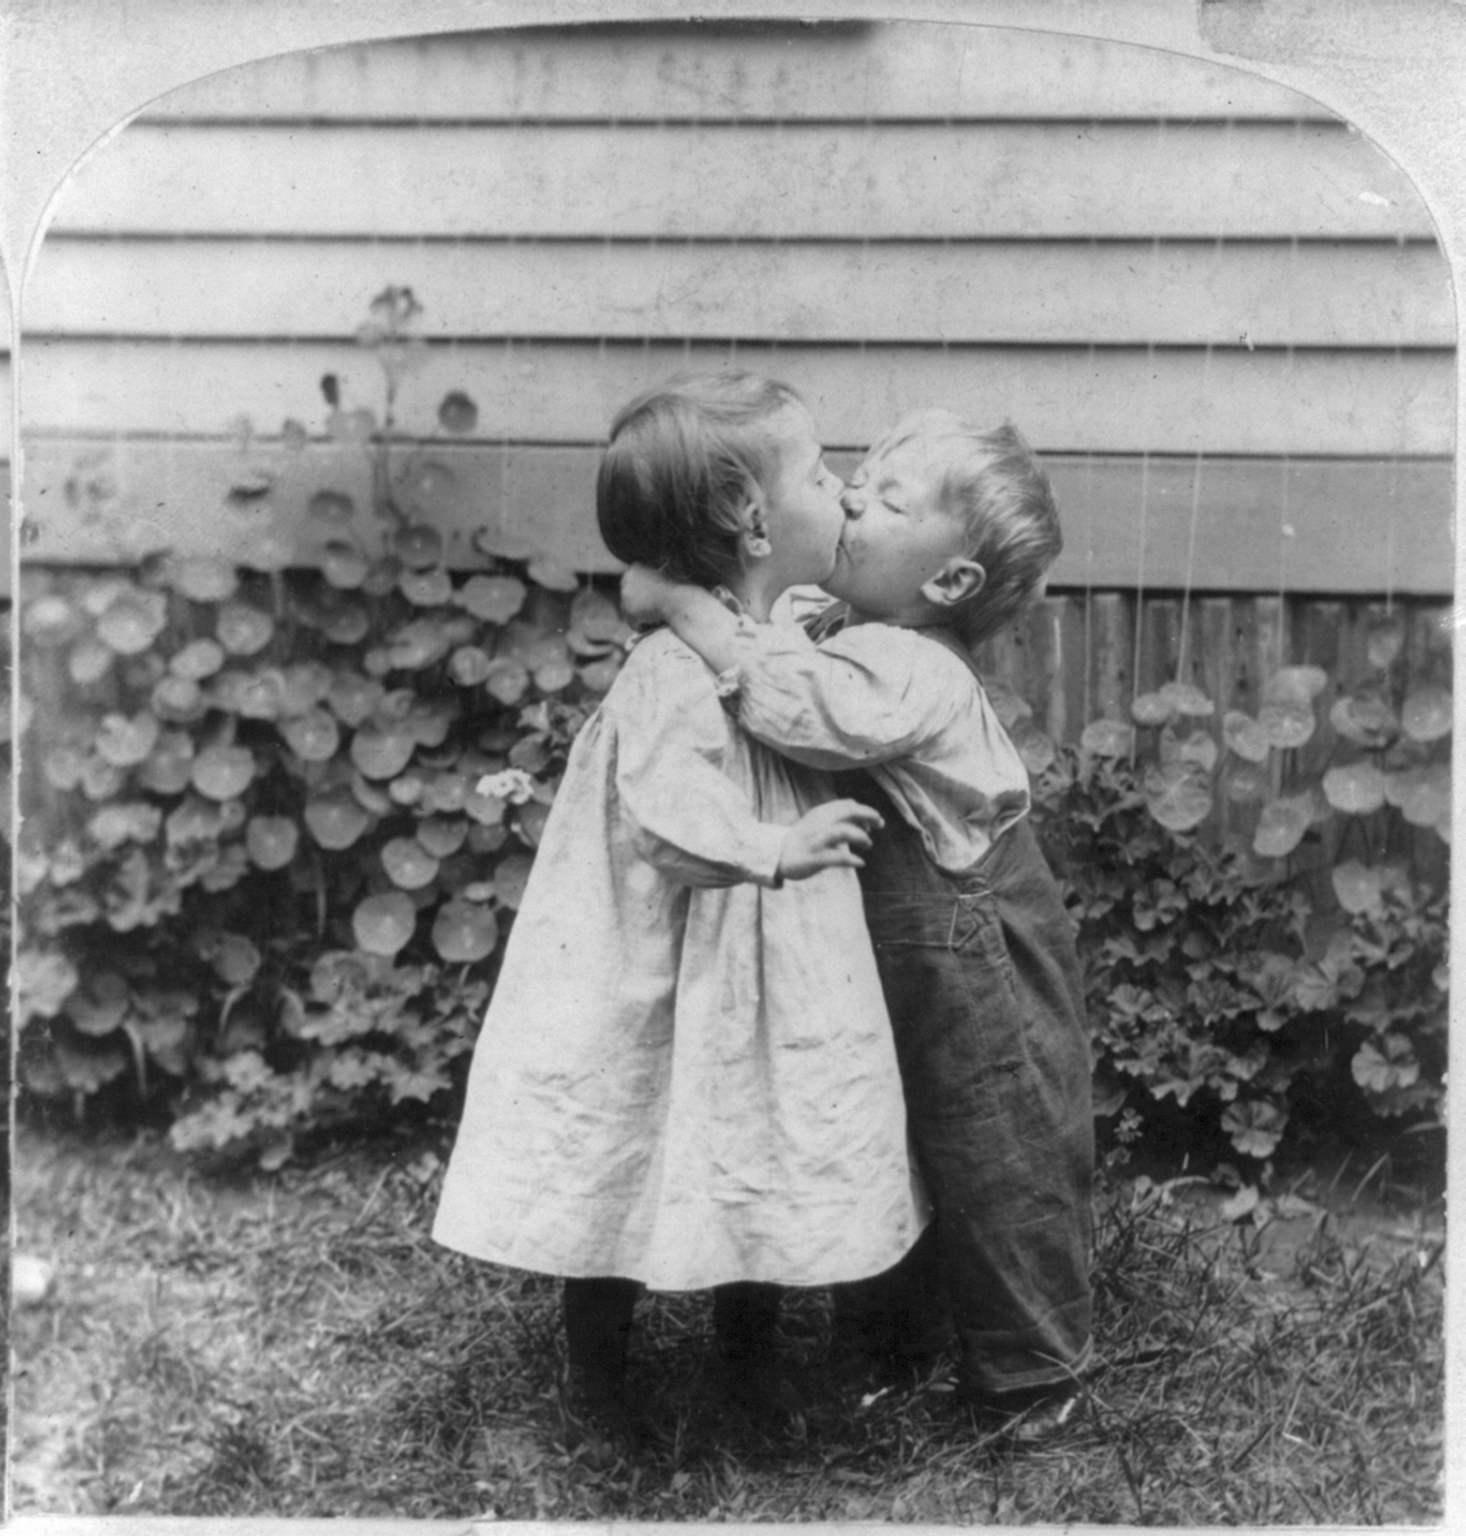 She_gets_the_penny,_he_gets_the_kiss